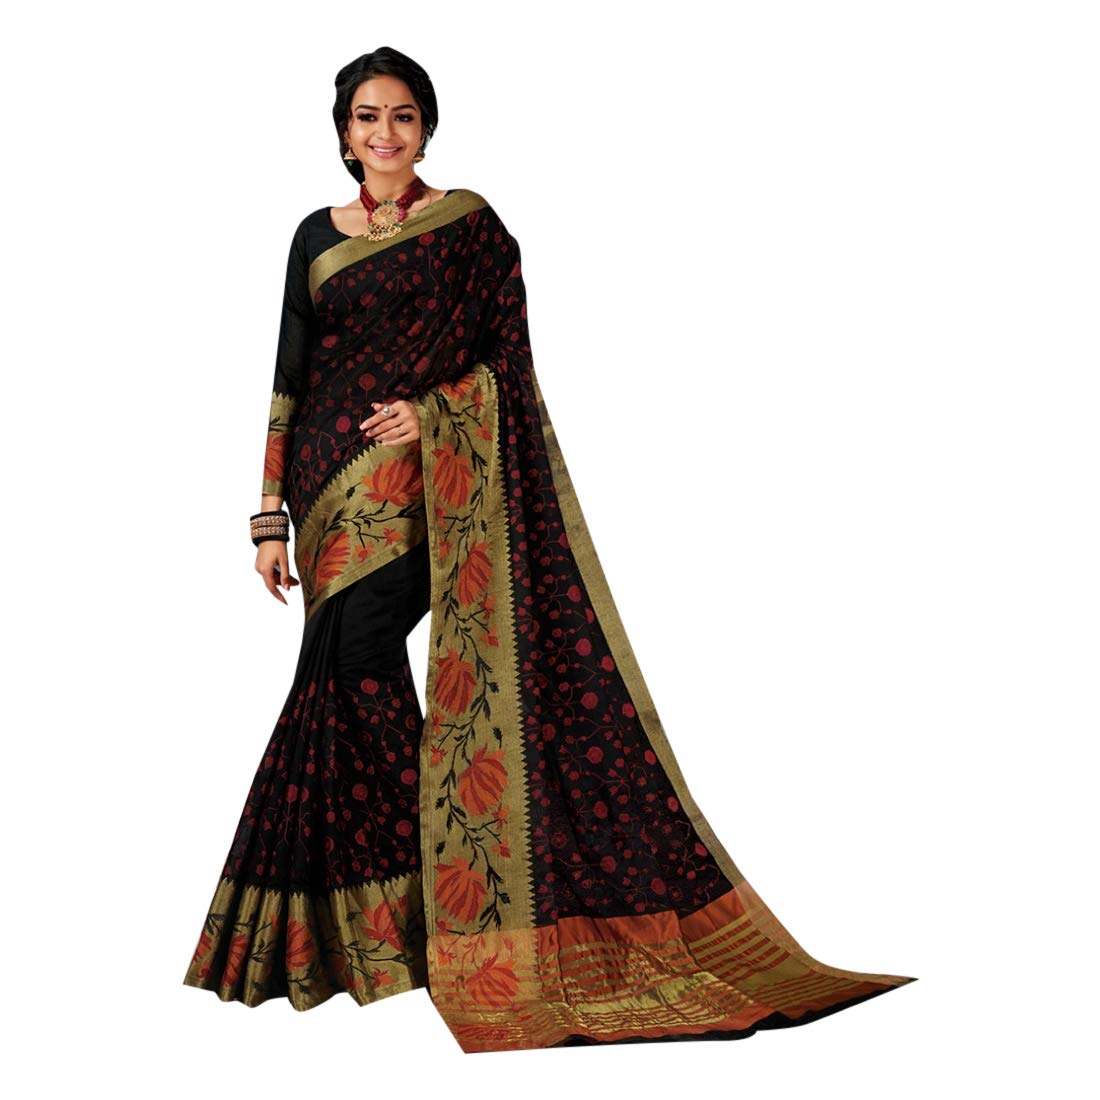 Black Indian Ethnic Traditional Cotton Saree Women Sari with Blouse piece Light wight Designer Party wear 7820